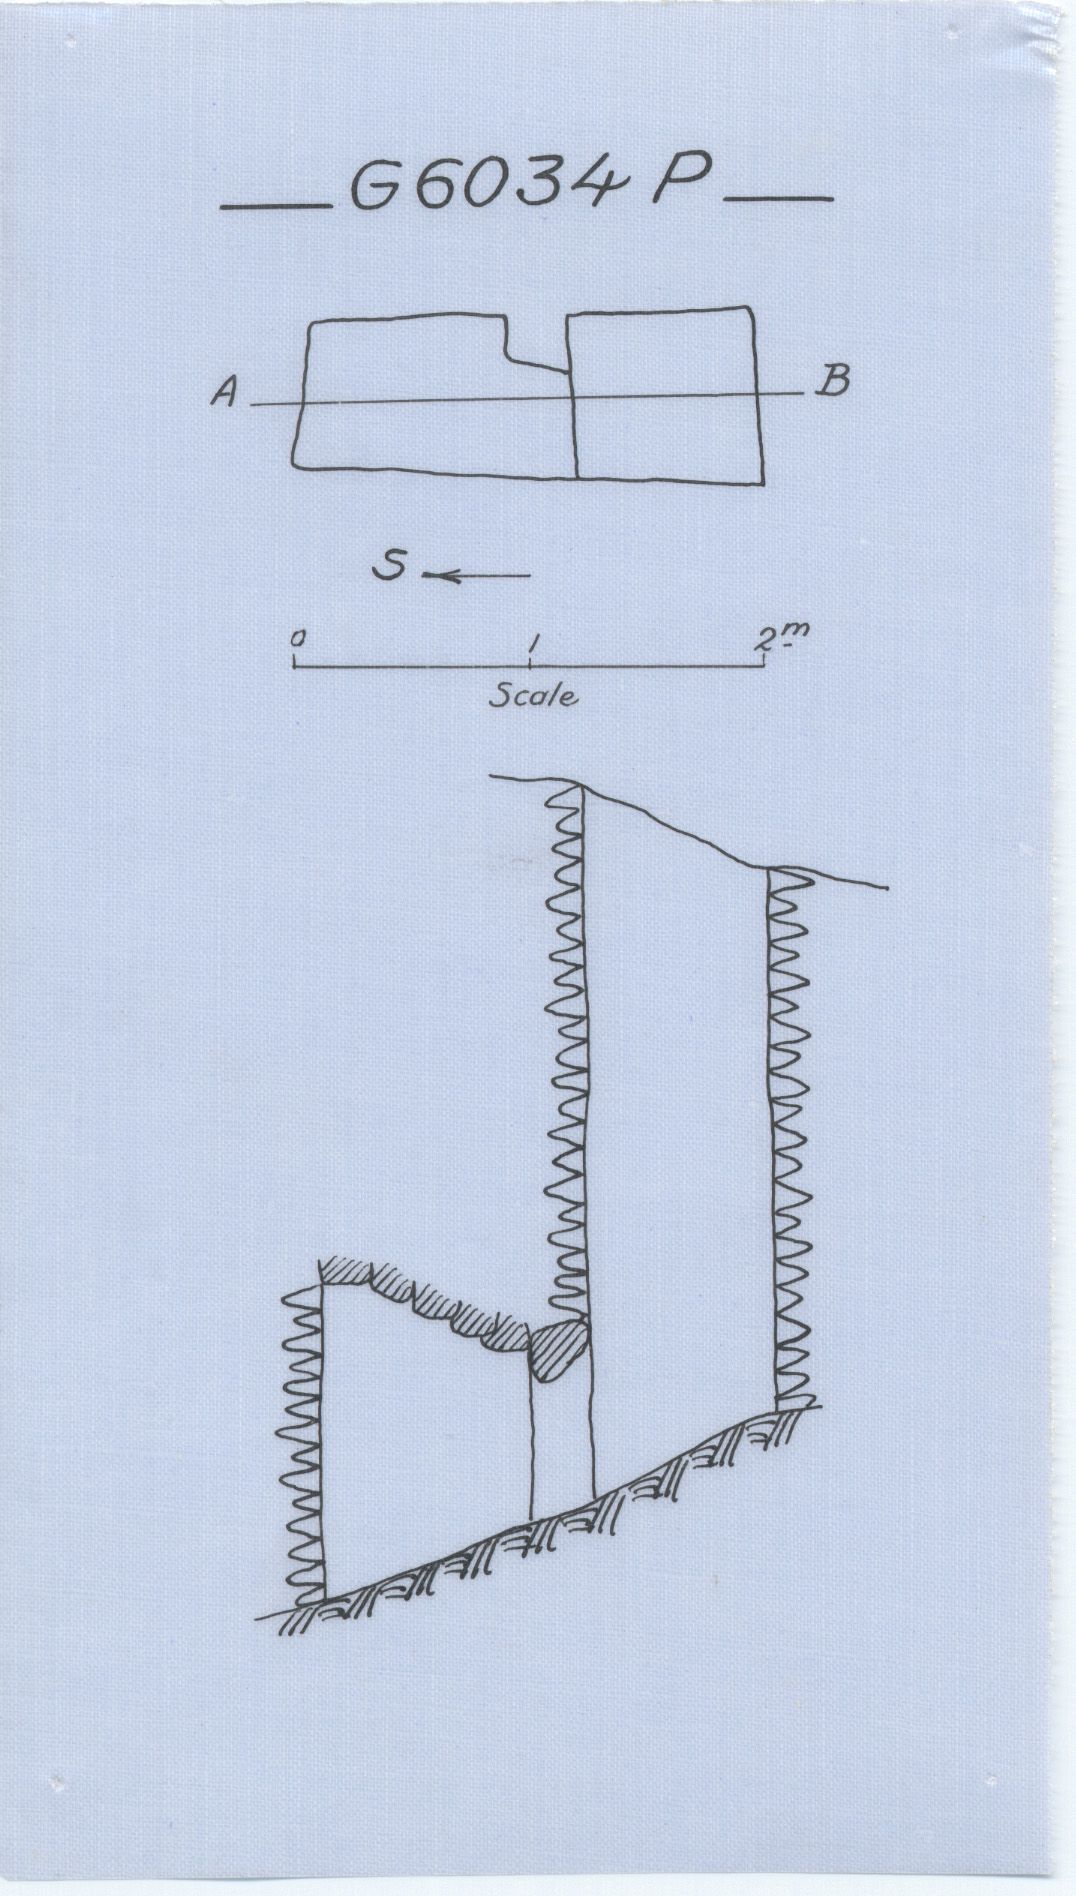 Maps and plans: G 6034, Shaft P